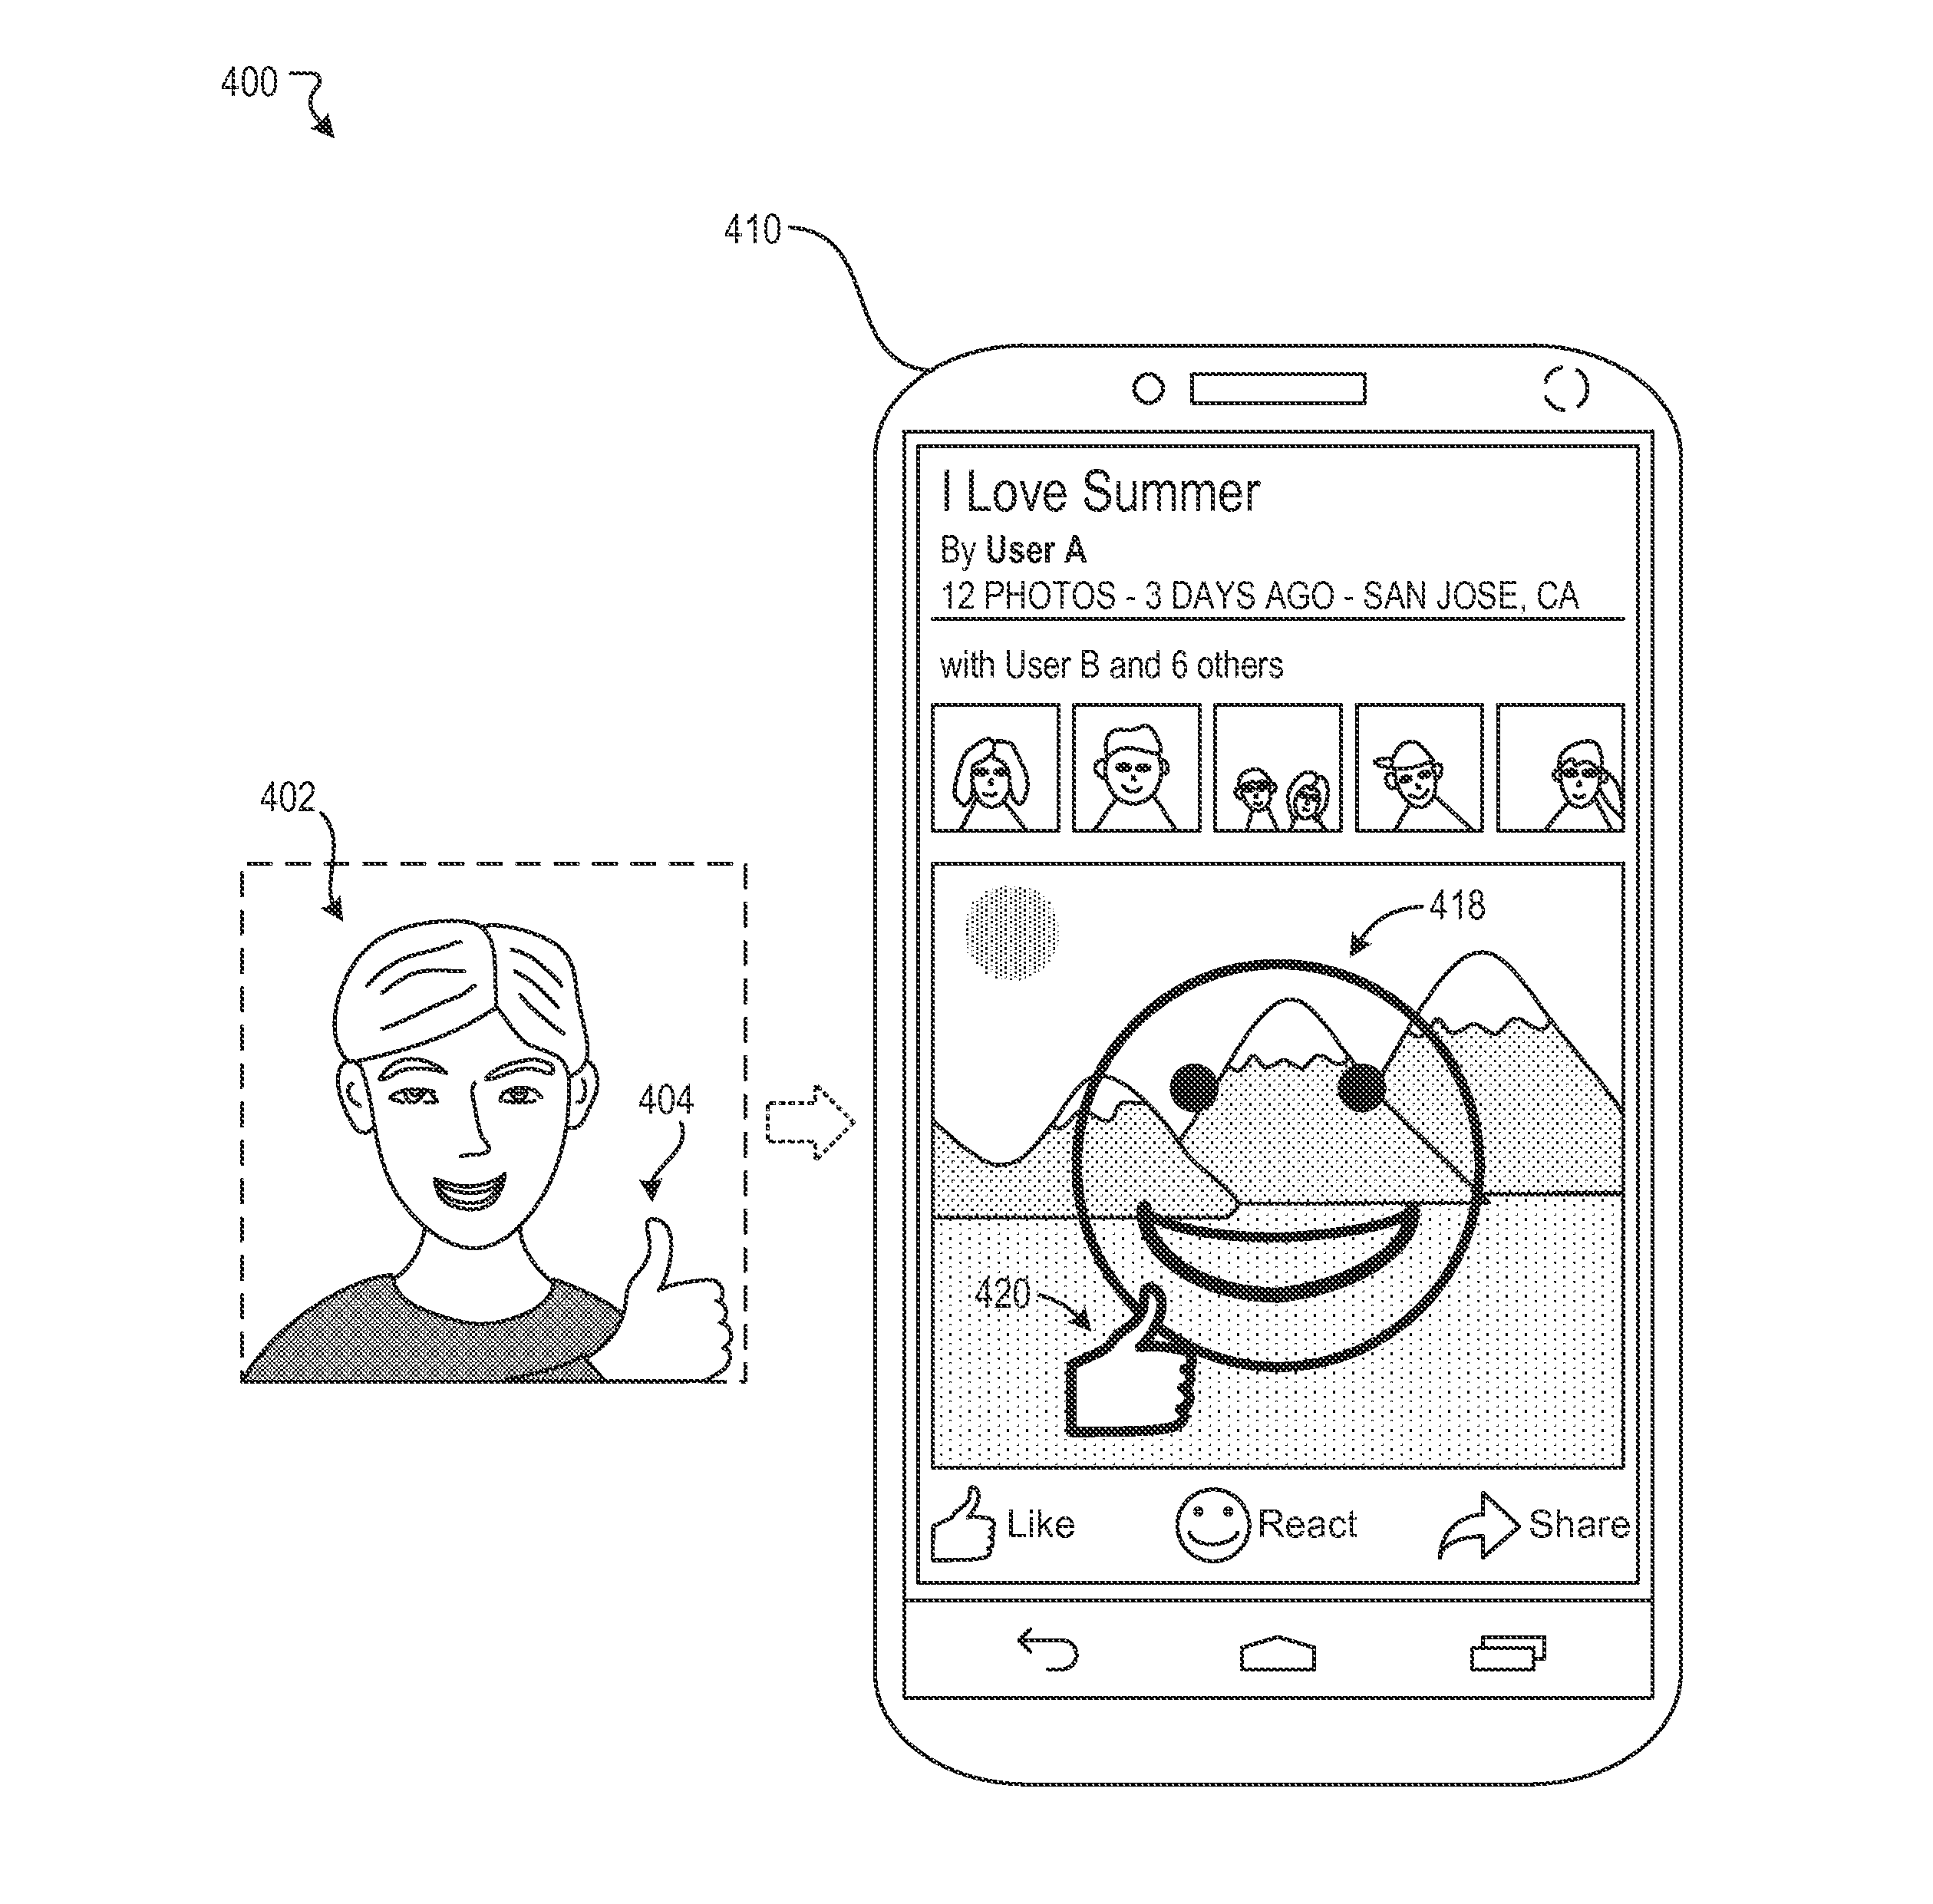 Systems and methods for dynamically generating emojis based on image analysis of facial features  - US-2017140214-A1